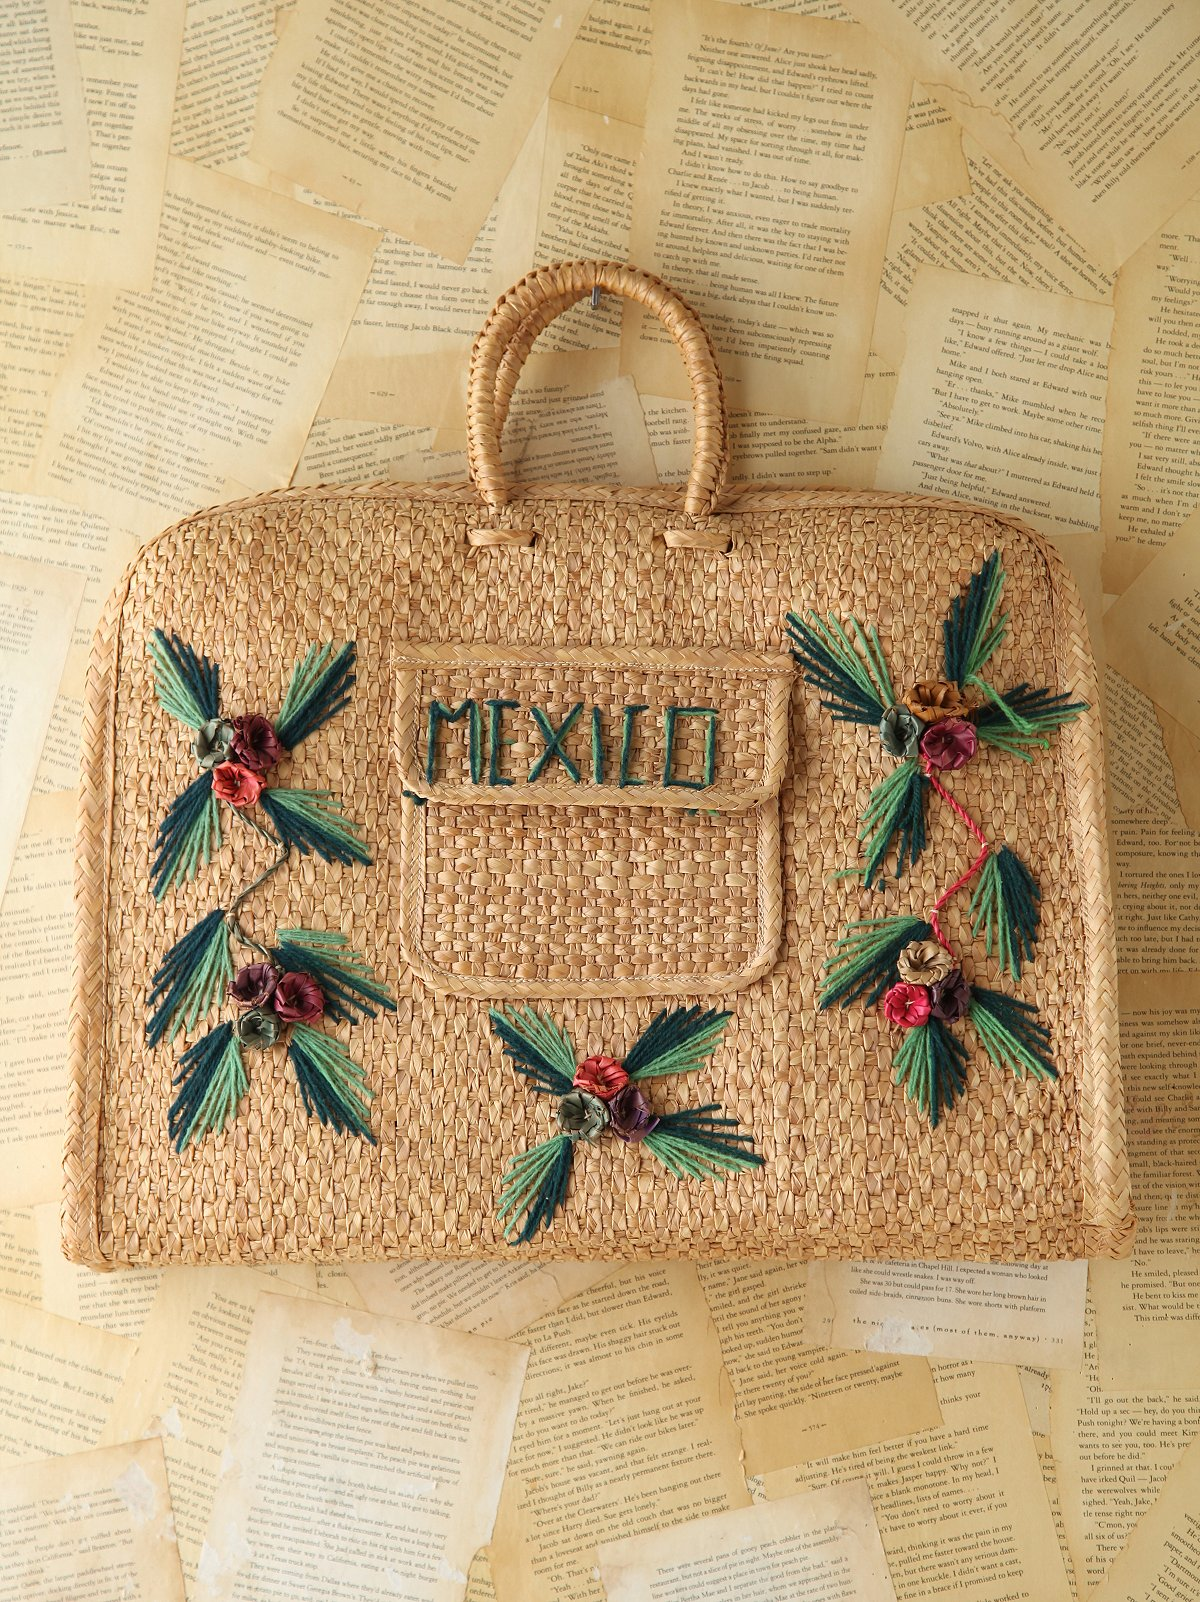 Vintage Mexico Woven Straw Tote